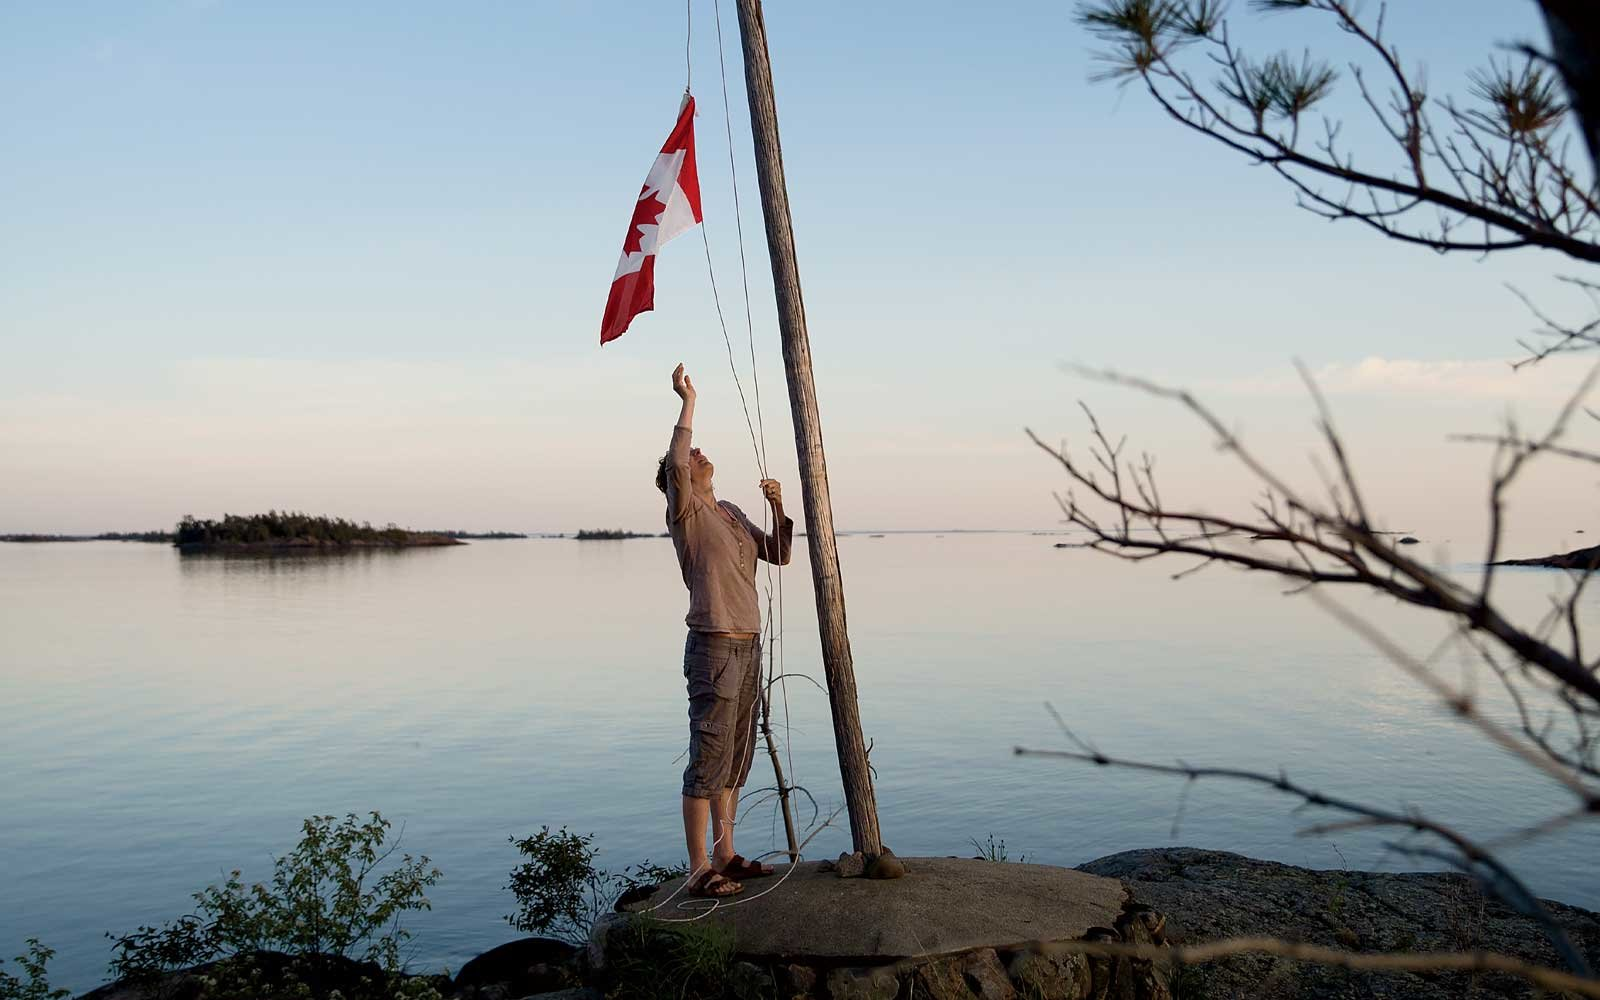 Raising (or lowering) the Canadian flag in rural Canada